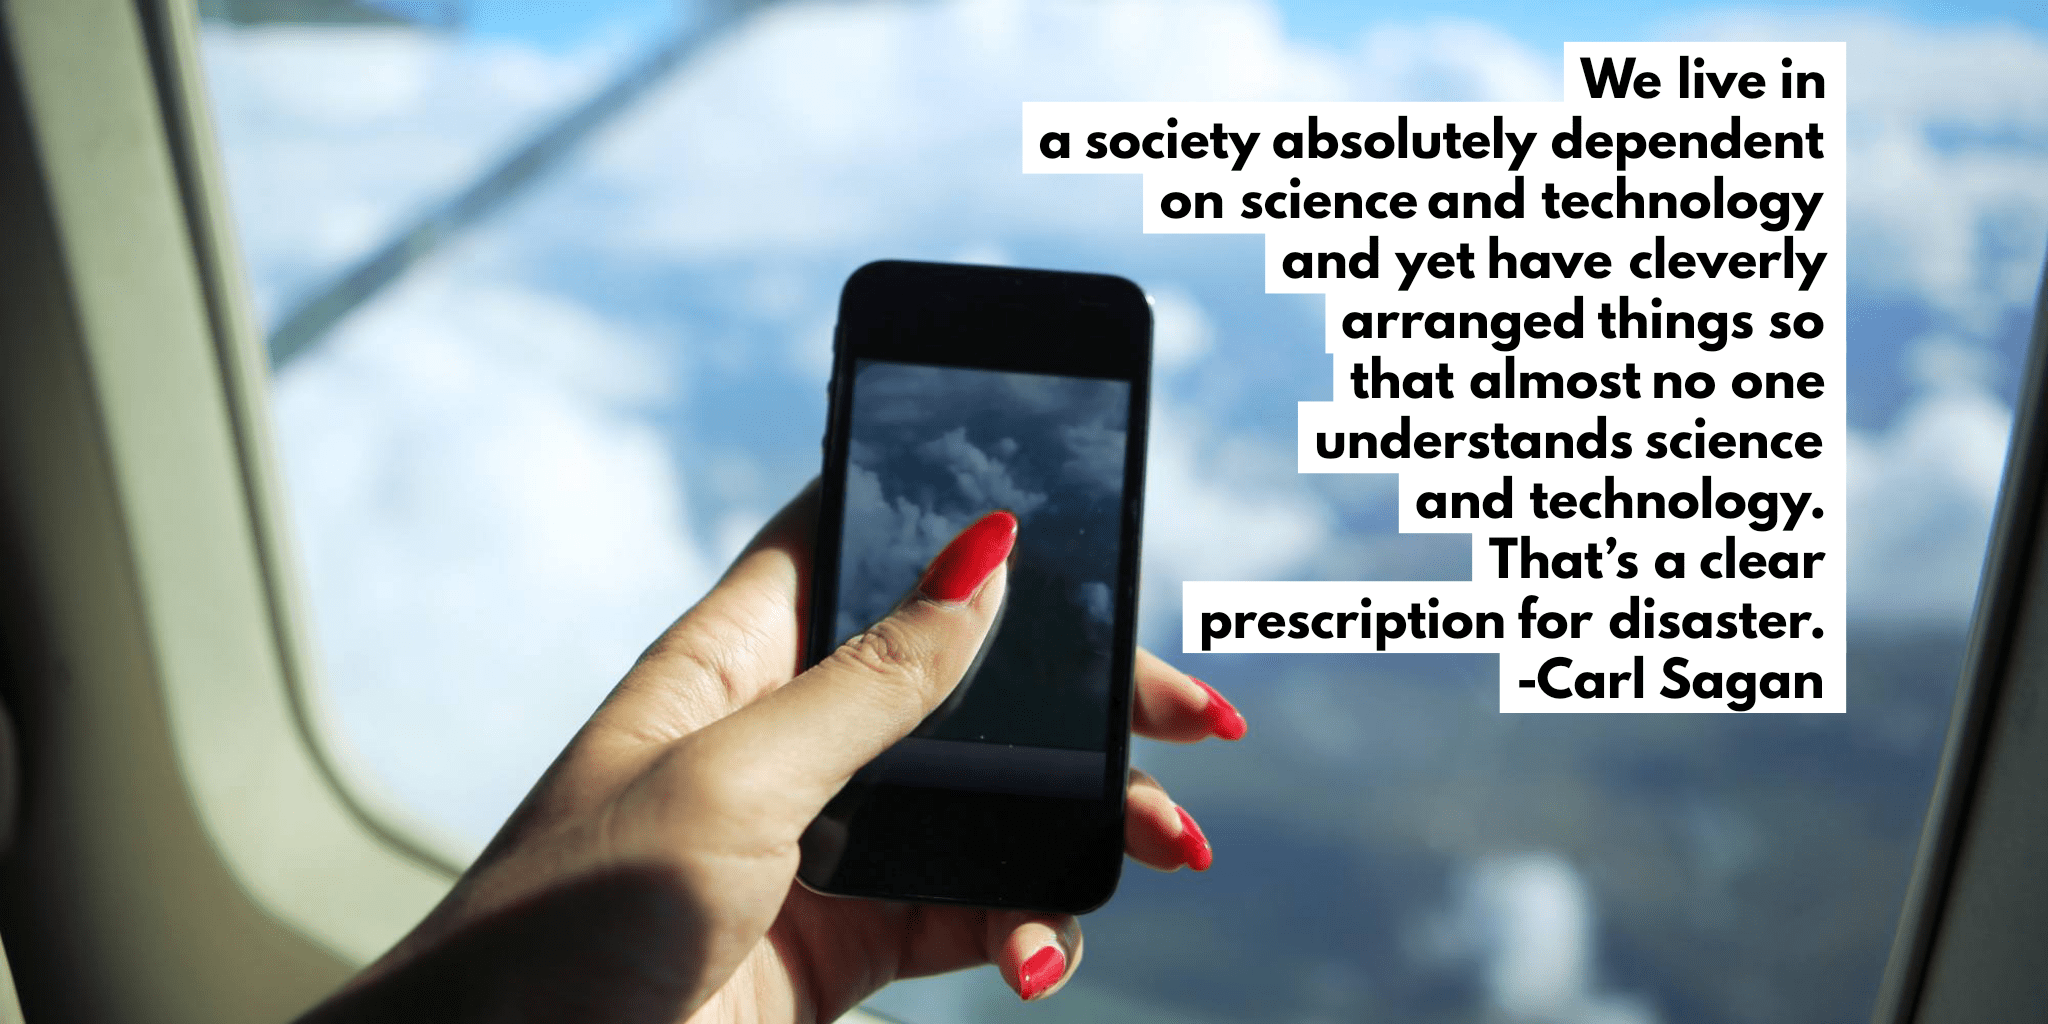 """We live in a society absolutely dependent on science and technology and yet have cleverly arranged things so that almost no one understands science and technology. That's a clear prescription for disaster."" -Carl Sagan [2048×1024]"